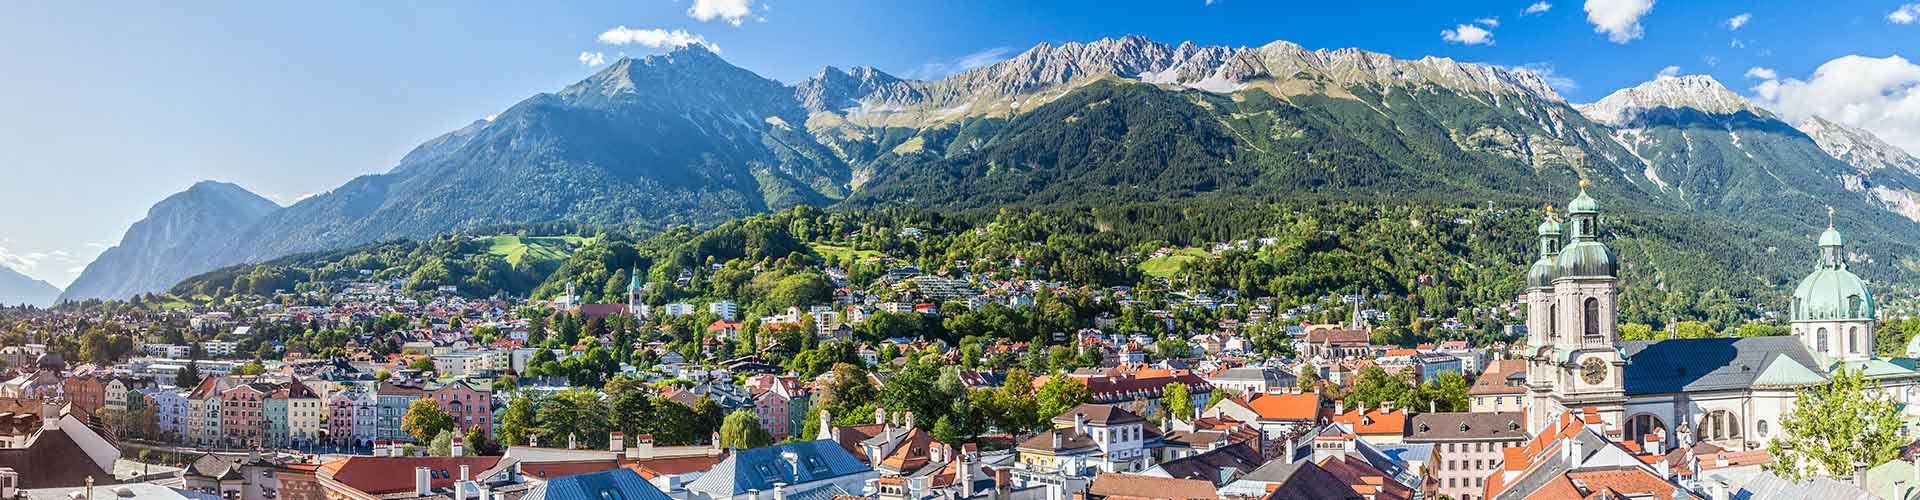 Innsbruck – Hostels in Innsbruck. Maps for Innsbruck, Photos and Reviews for each hostel in Innsbruck.